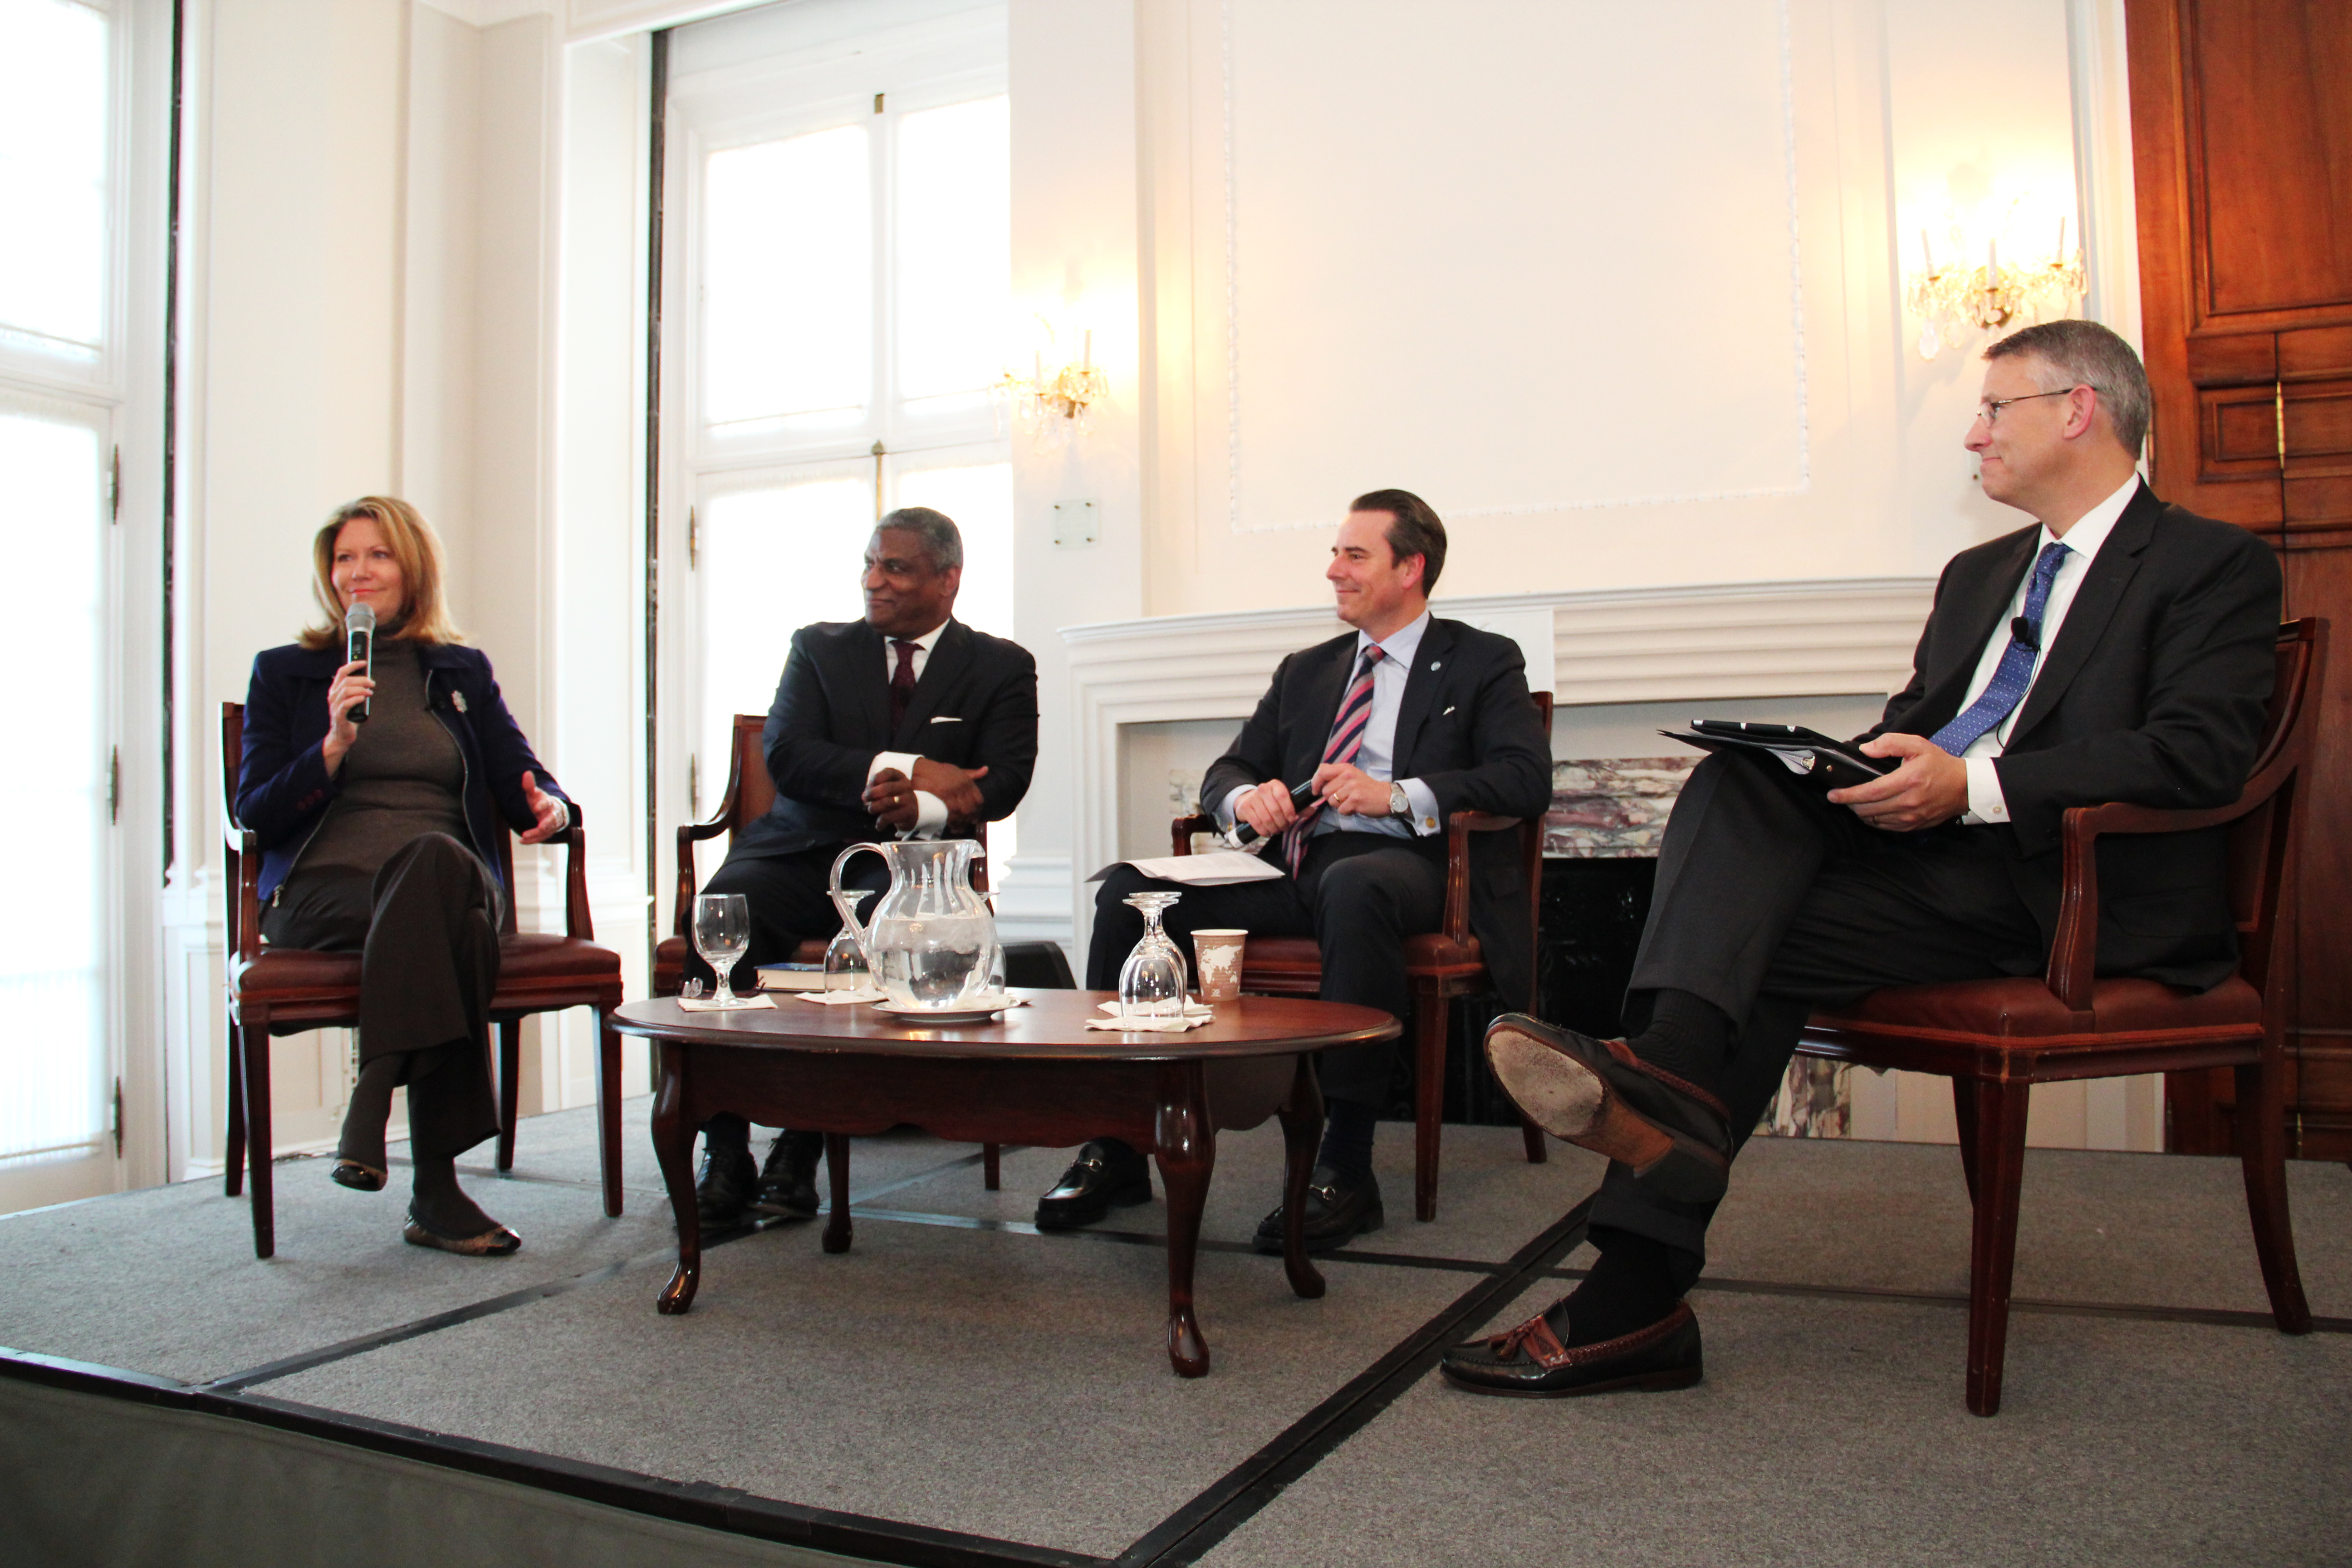 Ambassador Stuart Holliday moderates the Global Commerce, Mobility and Security Panel with Regina Hopper, President & CEO, ITS America; Secretary Rodney E. Slater, Partner, Squire Patton Boggs; and Tracy Rosser, Senior Vice President, Transportation, Walmart.